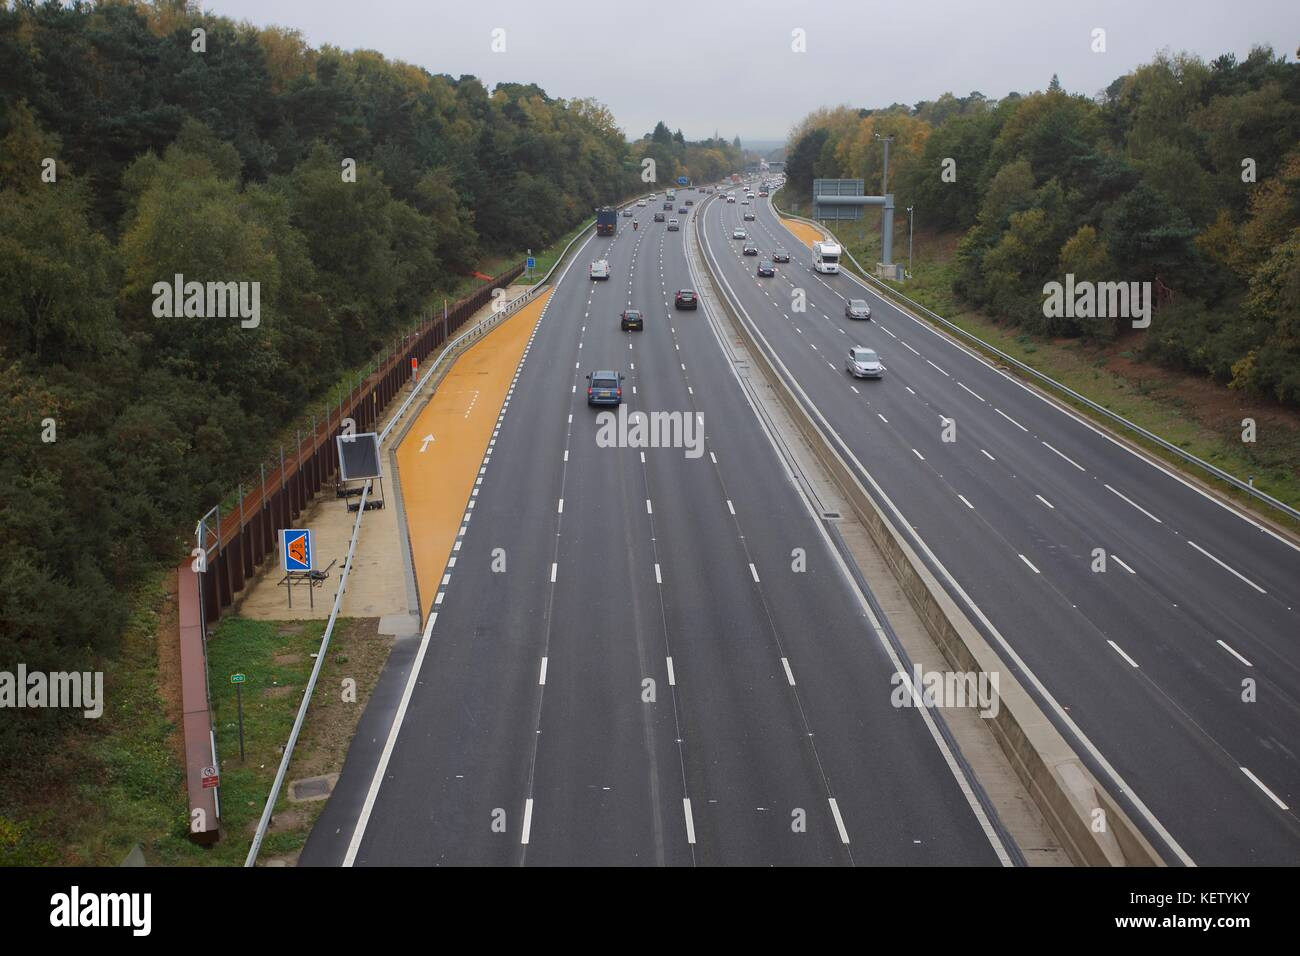 managed motorway - Stock Image